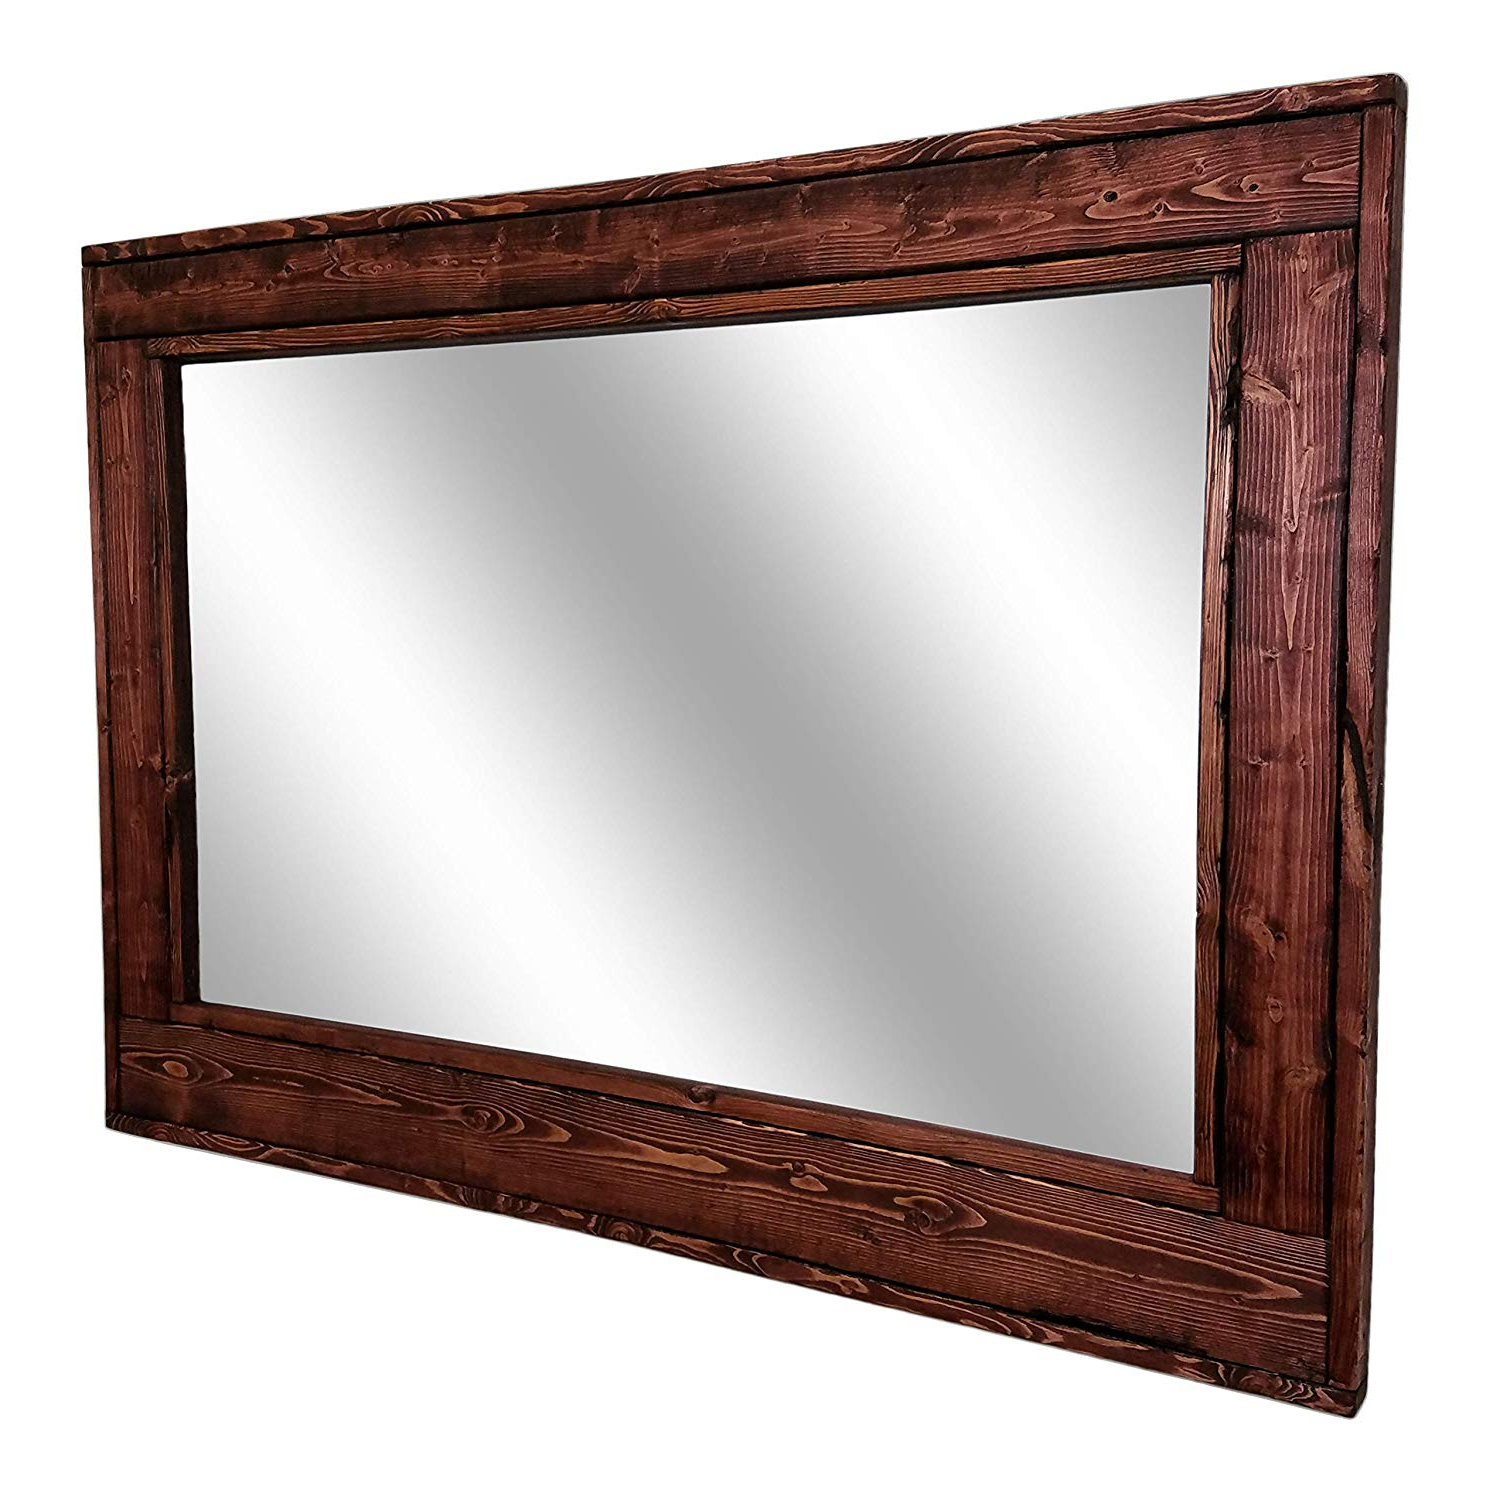 Most Popular Herringbone Reclaimed Wood Framed Mirror, Available In 4 Sizes And 20 Stain Colors: Shown In Red Mahogany – Rustic Wall Mirror – Large Wall Mirror – Regarding Large Wall Mirrors With Wood Frame (View 1 of 20)